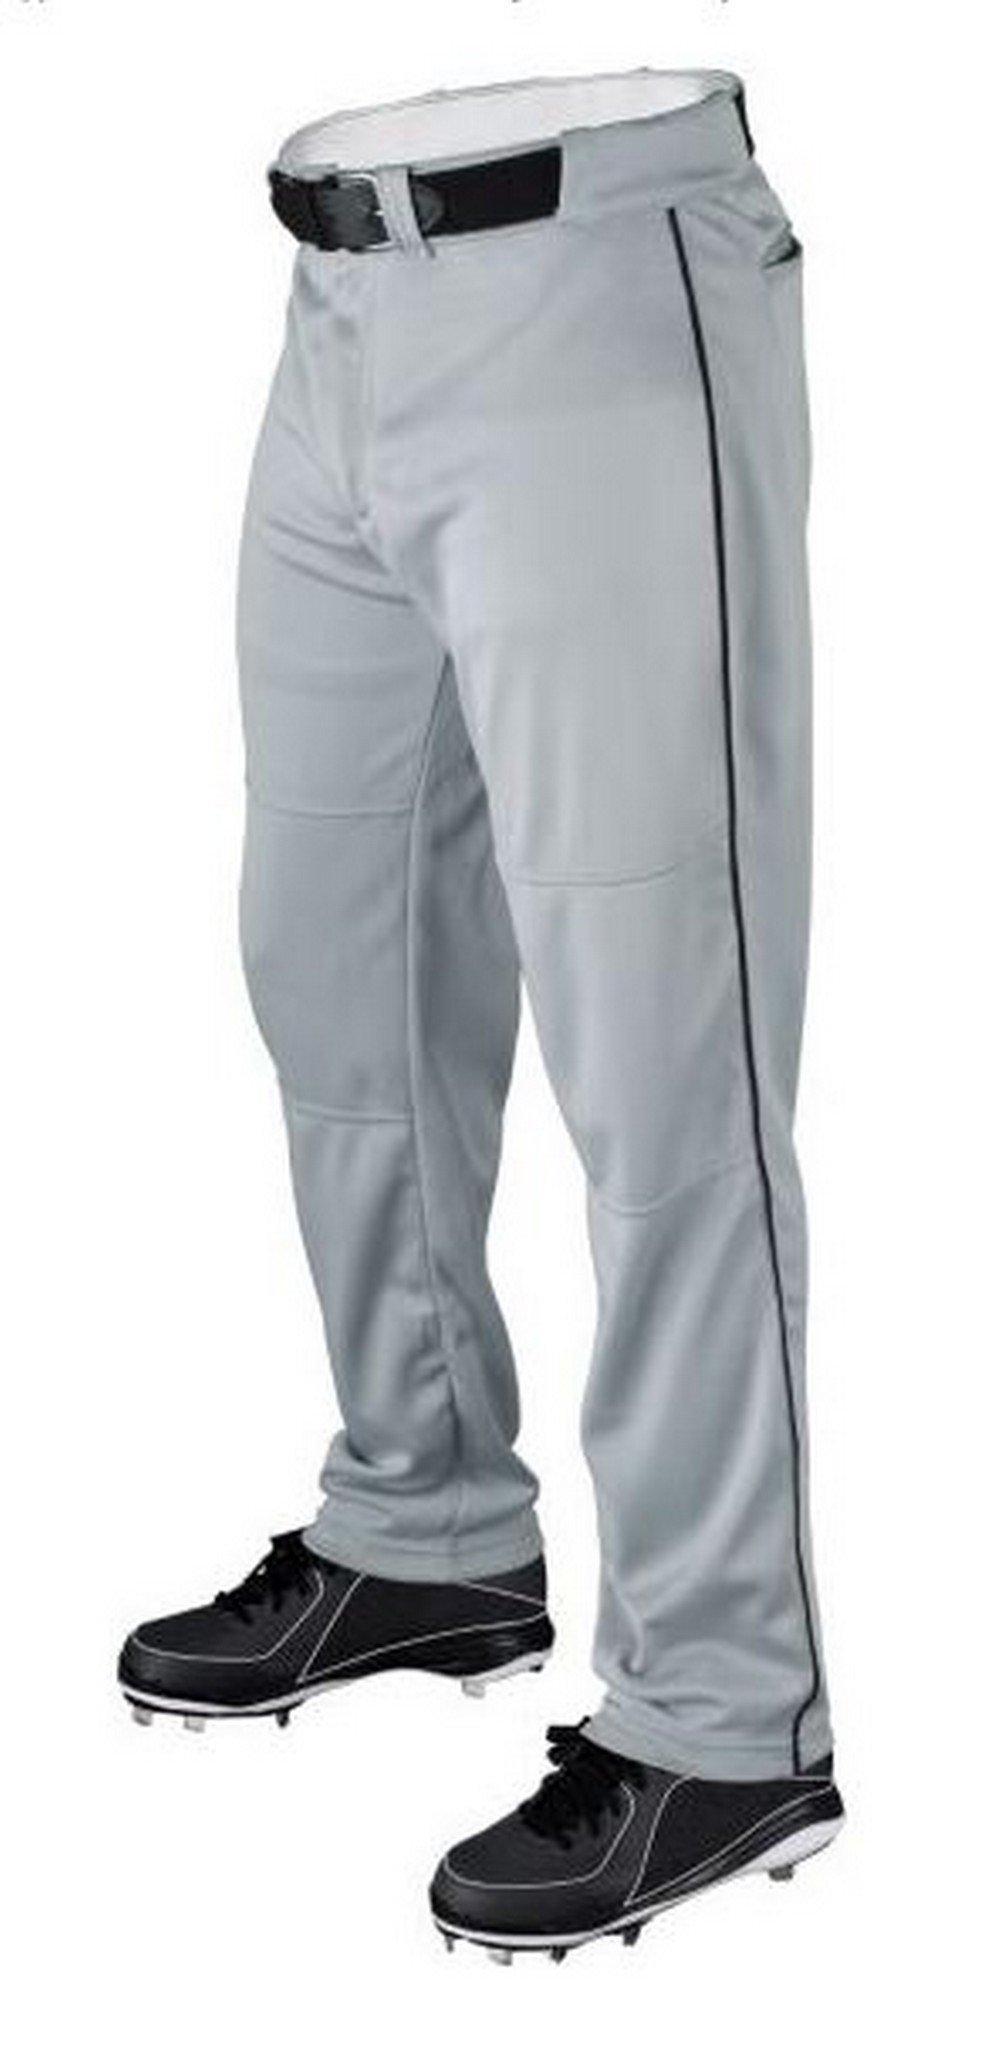 Wilson Youth Classic Relaxed Fit Piped Baseball Pant, Grey/Black, Small by Wilson